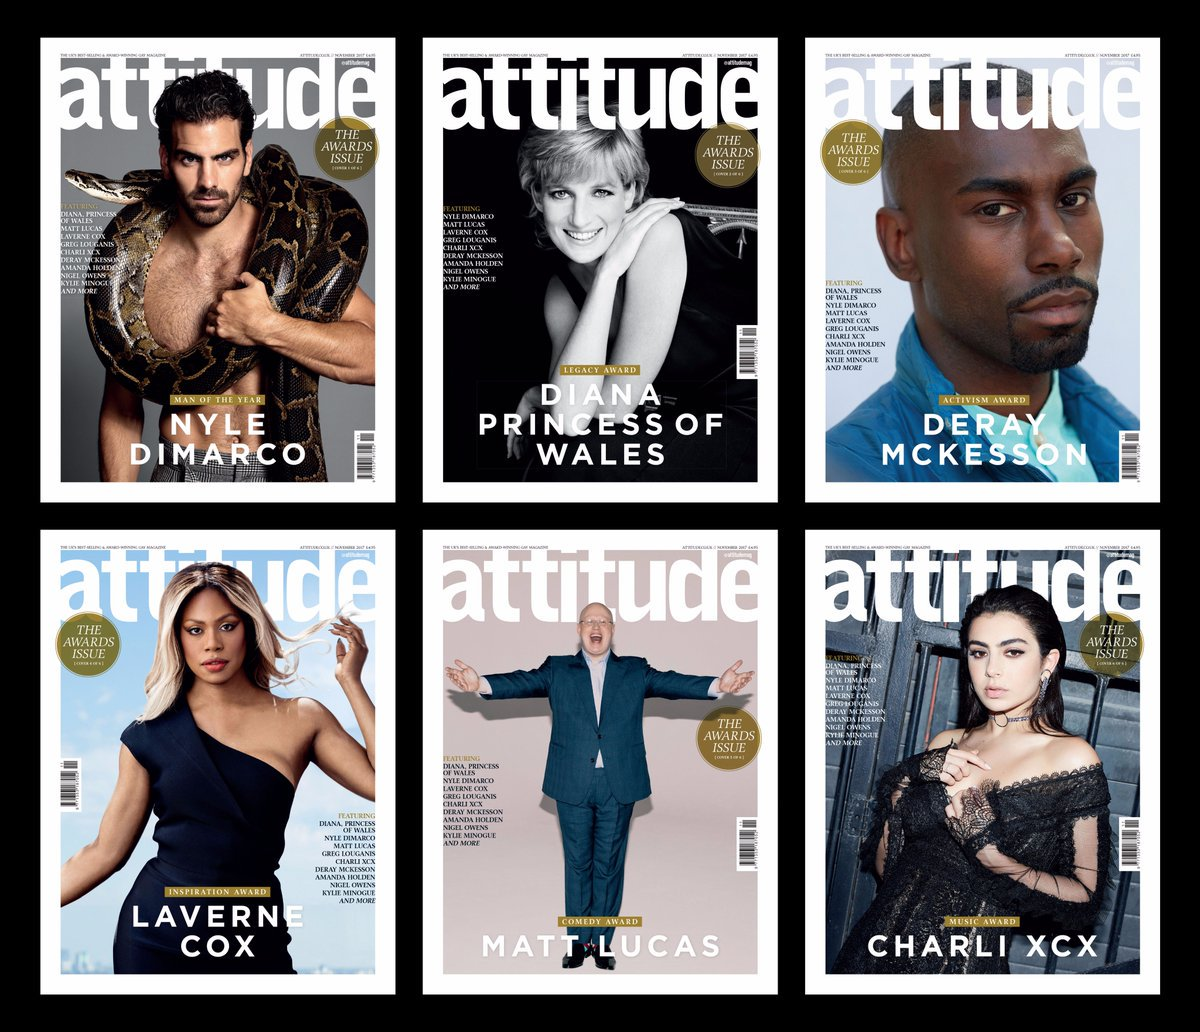 Can't find the #AttitudeAwards cover you want in the shops? Order dire...